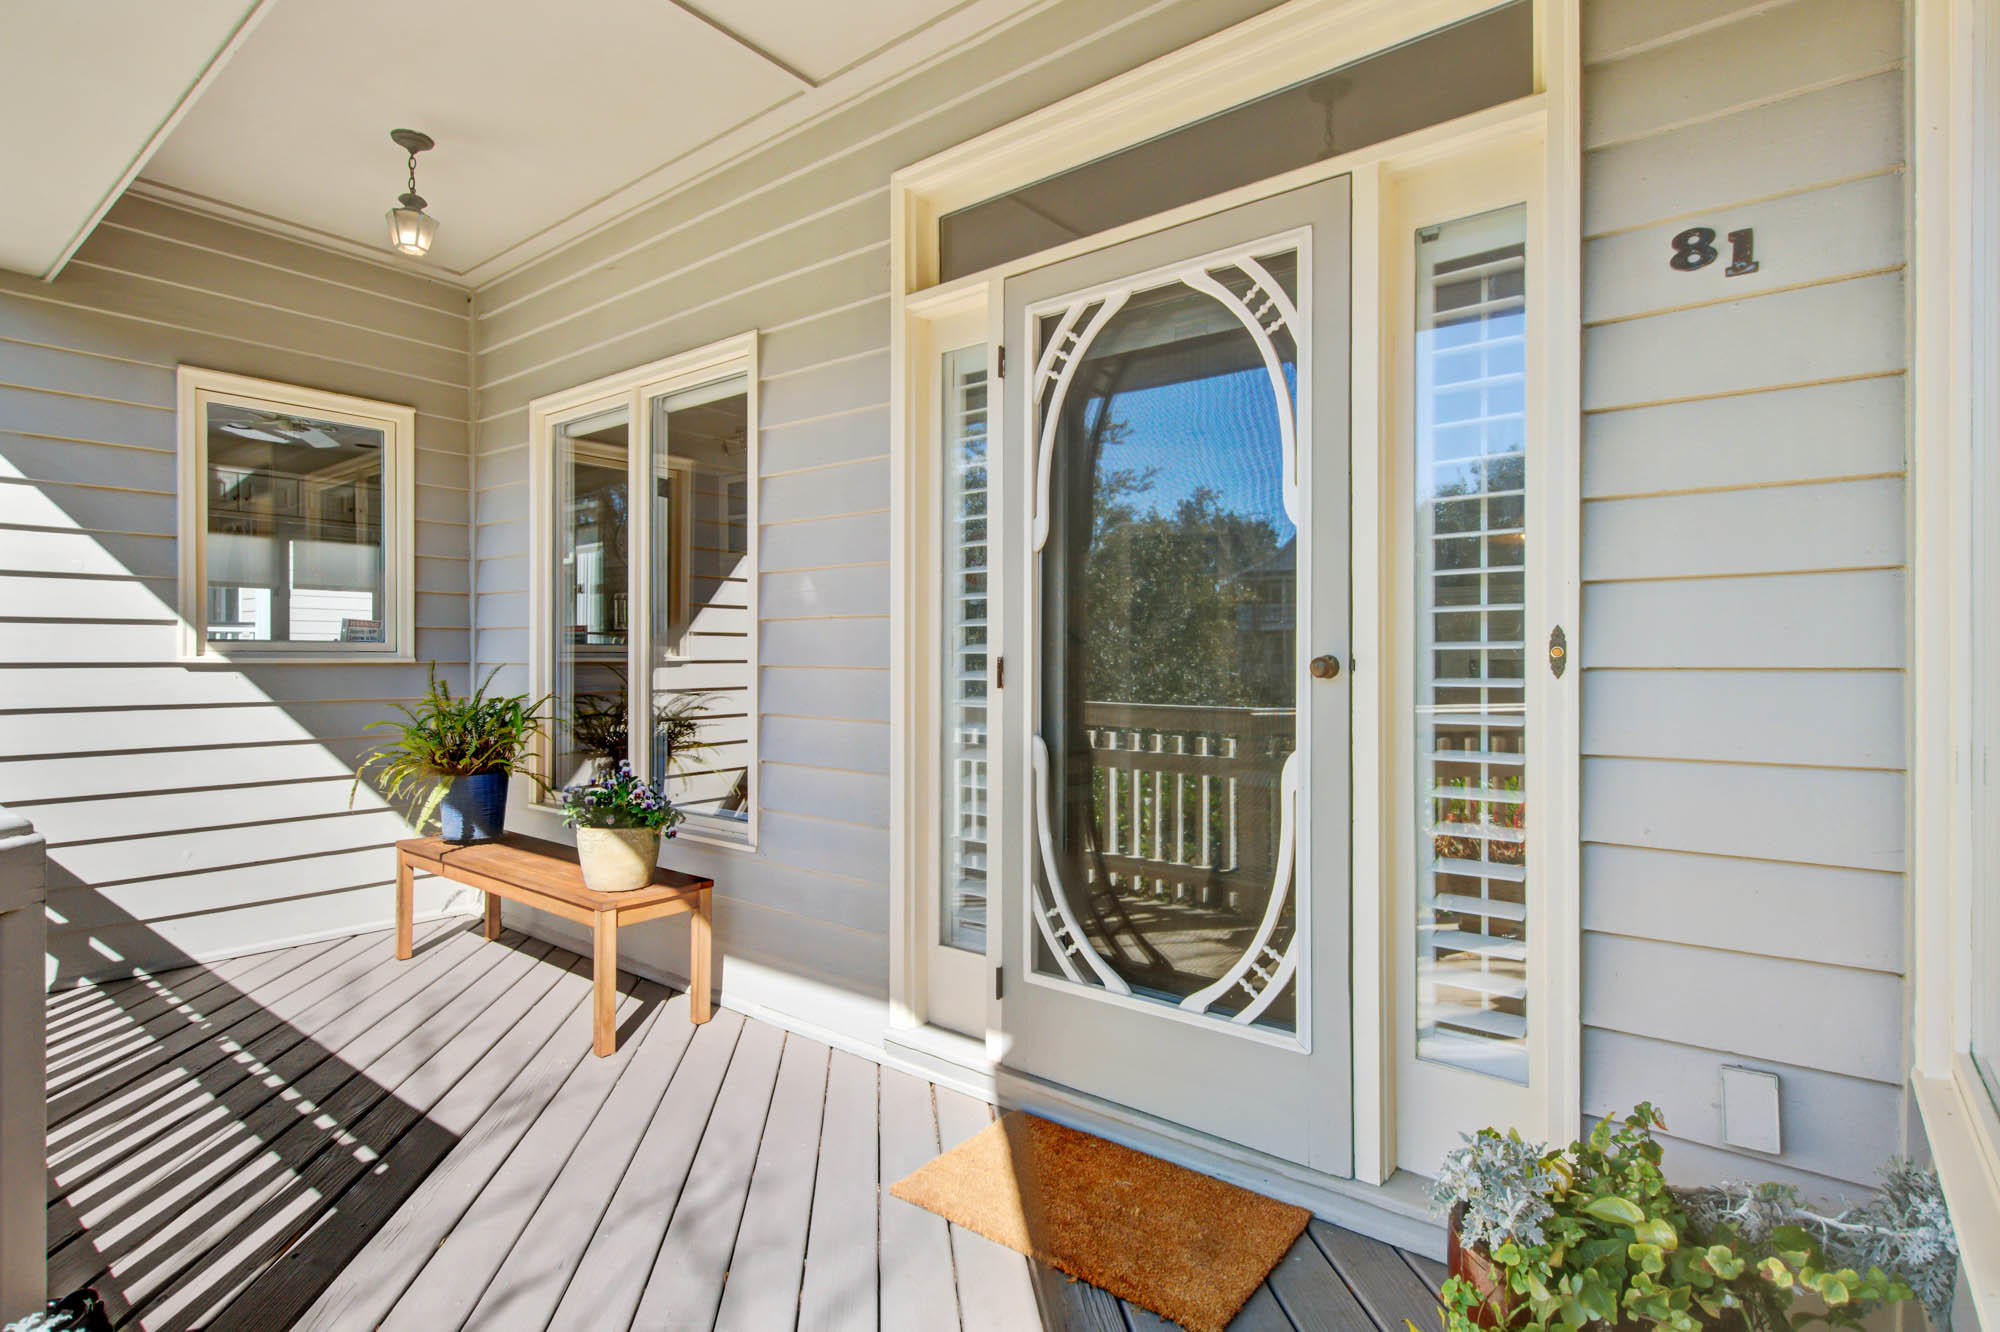 On The Harbor Homes For Sale - 81 On The Harbor, Mount Pleasant, SC - 50